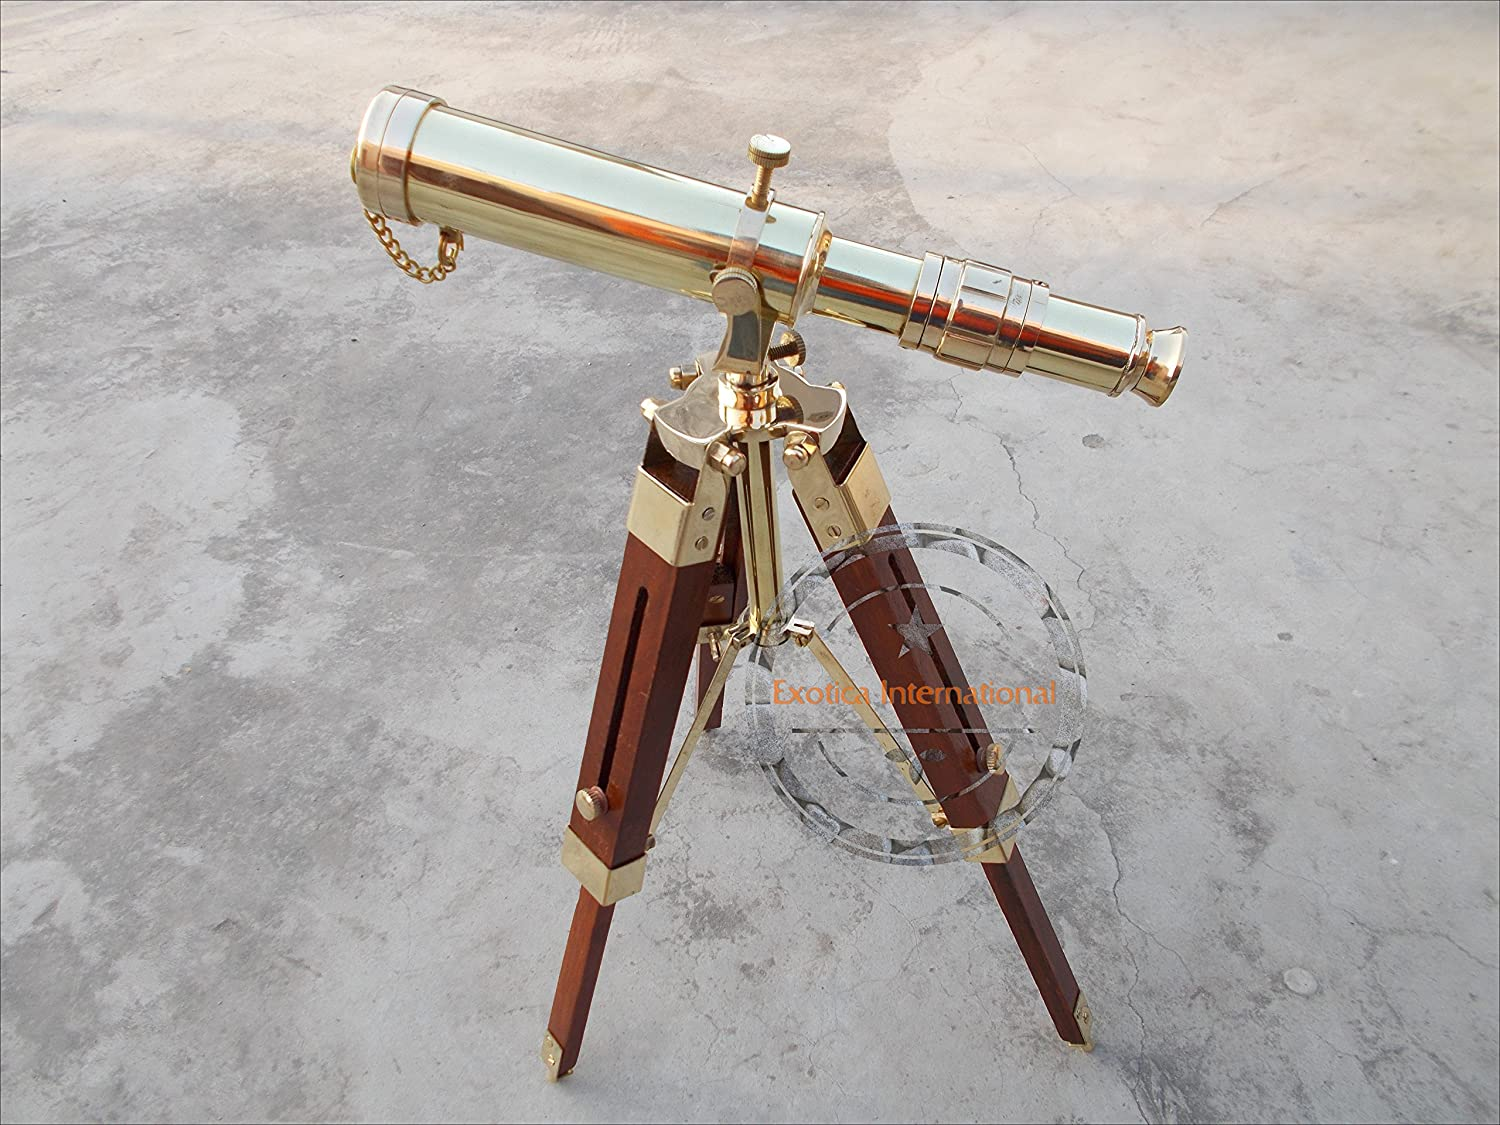 Brass Polished Finish Telescope Spyglass with Wooden Tripod Nautical 10  inch Home Decor Gift Vintage Brass Telescope on Desktop for Table Accessory Handmade